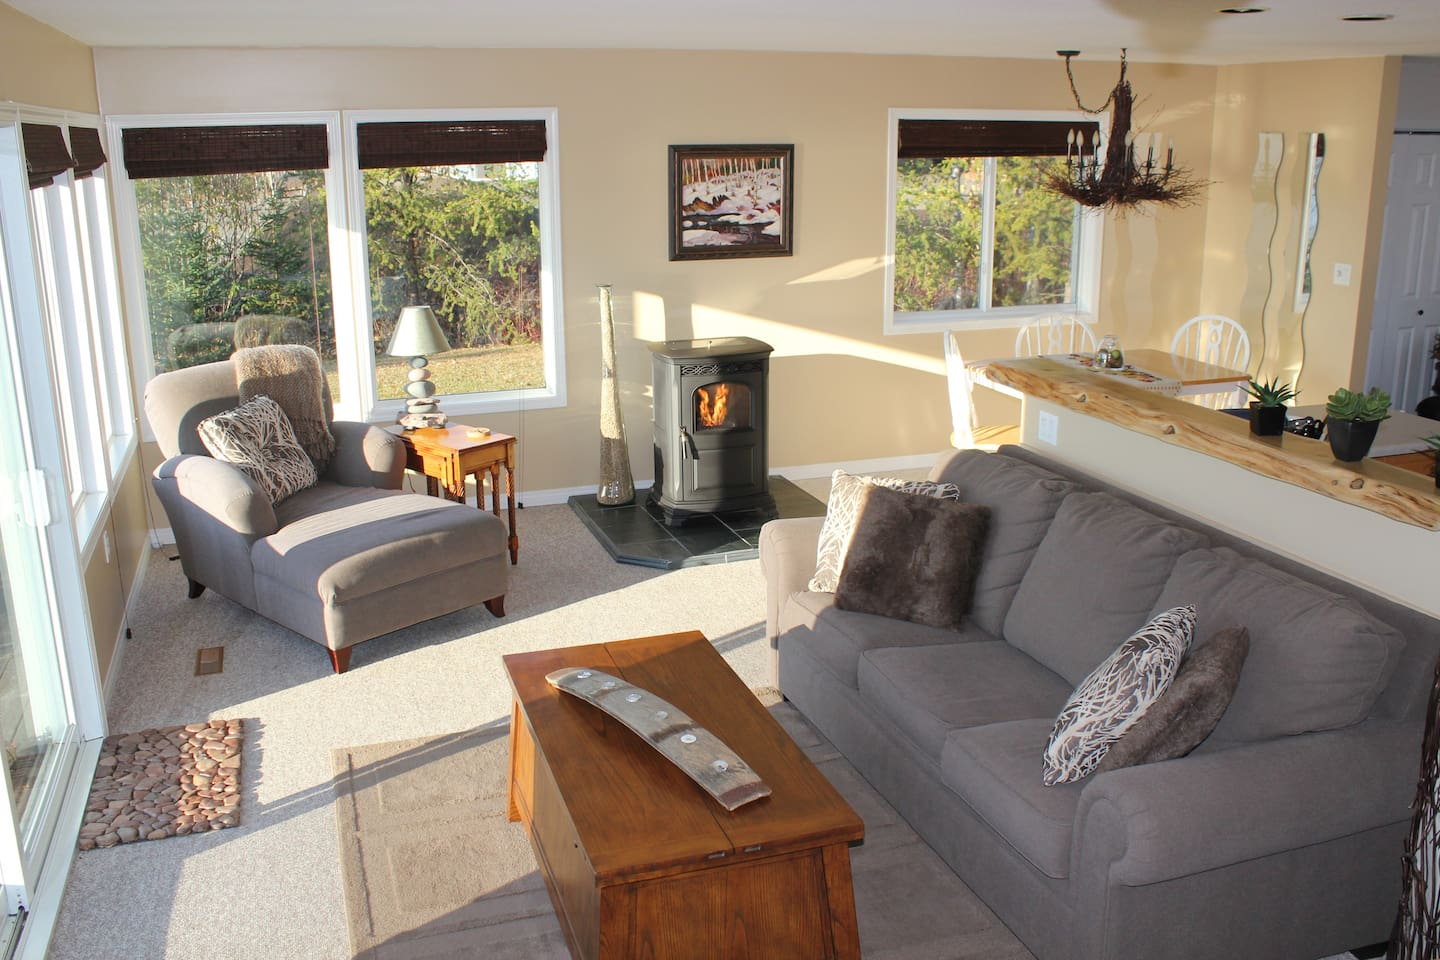 The living room in the spring time with the pellet stove burning creating ambiance and coziness